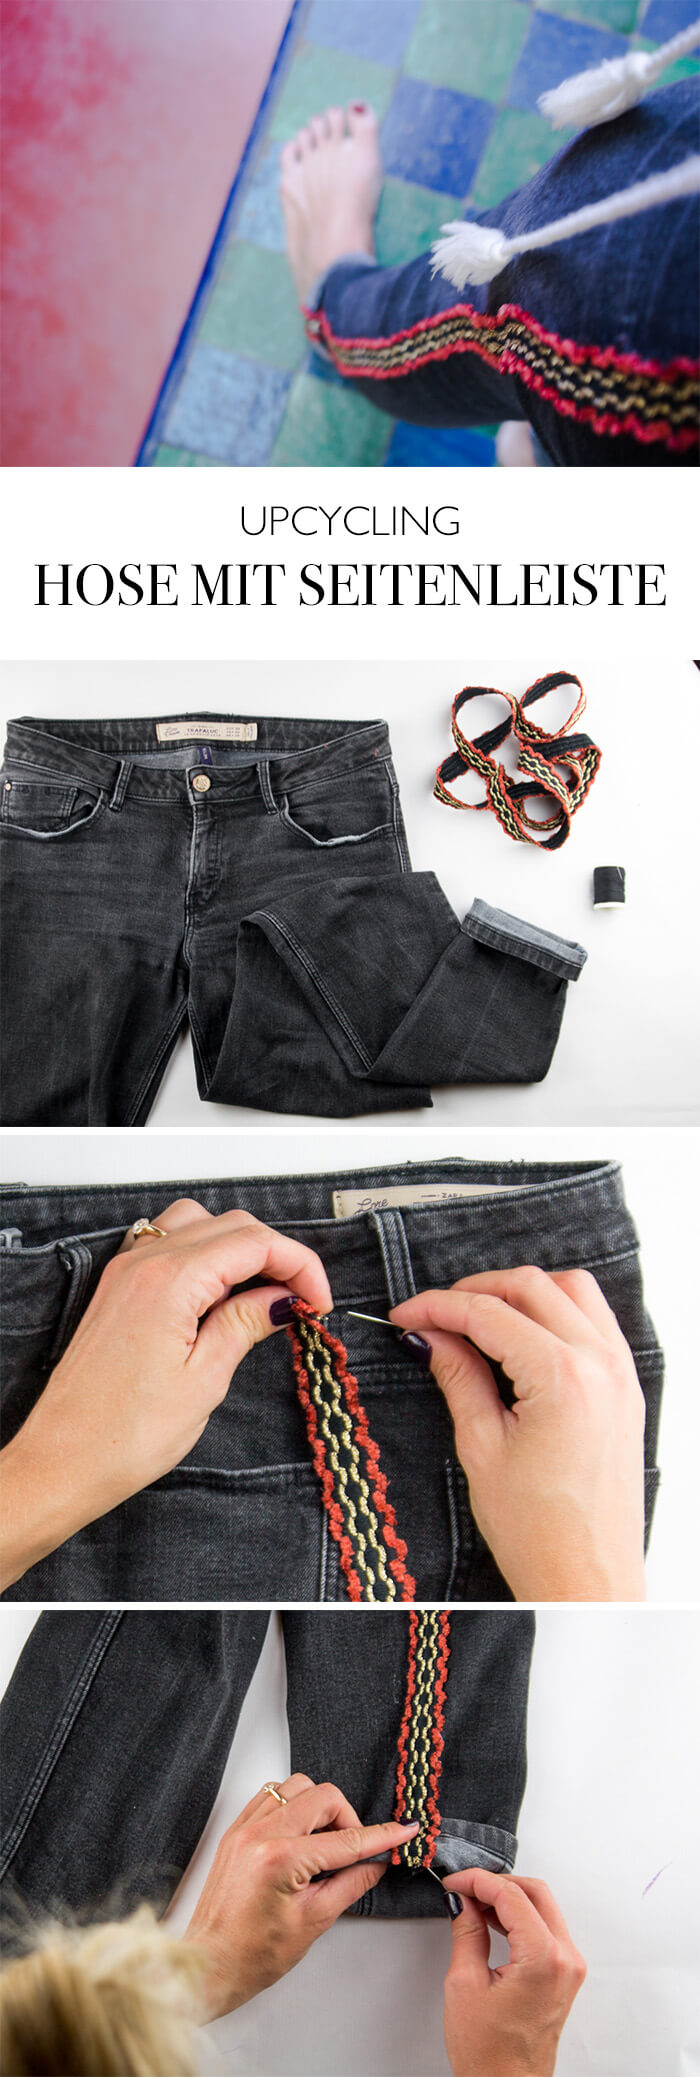 Upcycling DIY Blog Fashion do it yourself Hose aufpeppen Seitenleiste Design